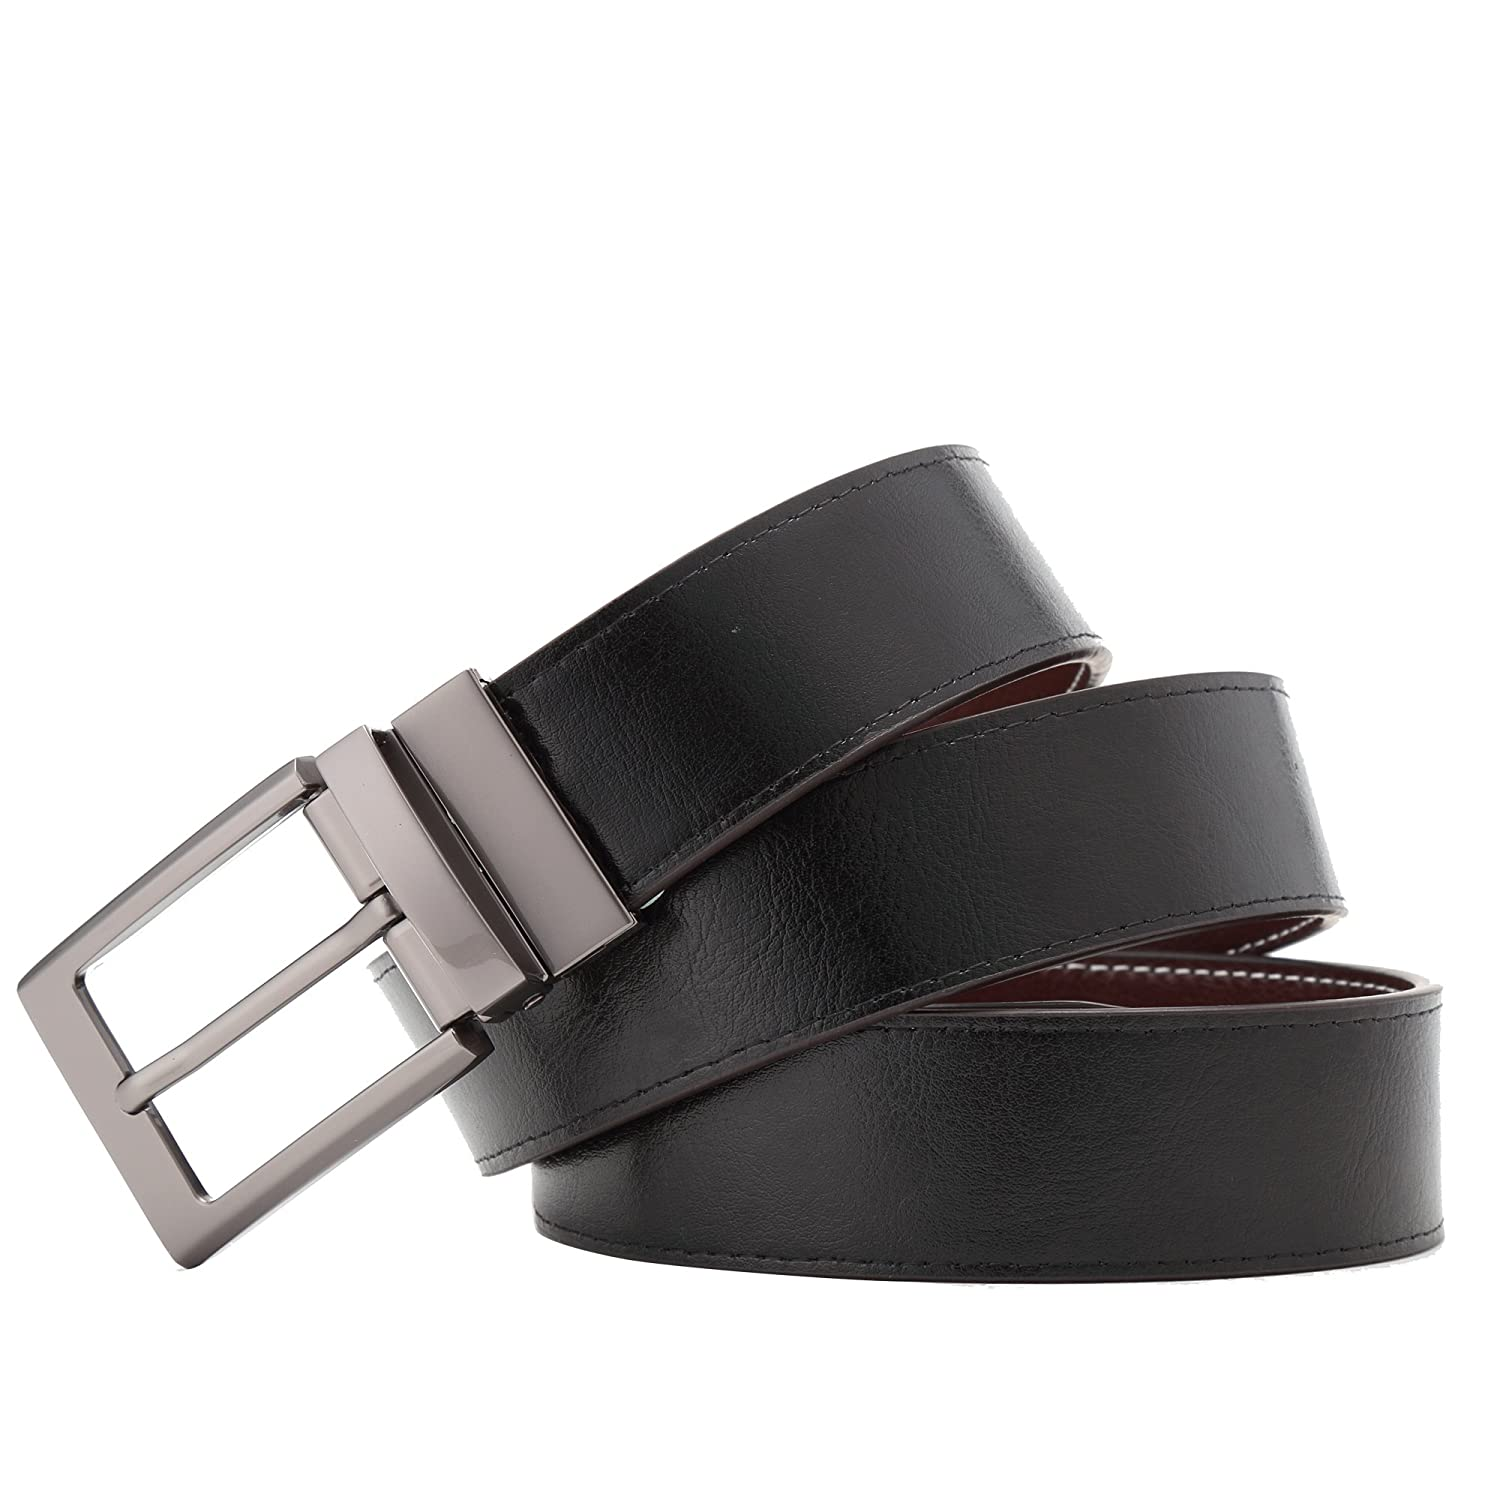 BISON DENIM Mens Reversible Leather Belt Two Sided Dress Belt Casual Rotated Buckle Belts